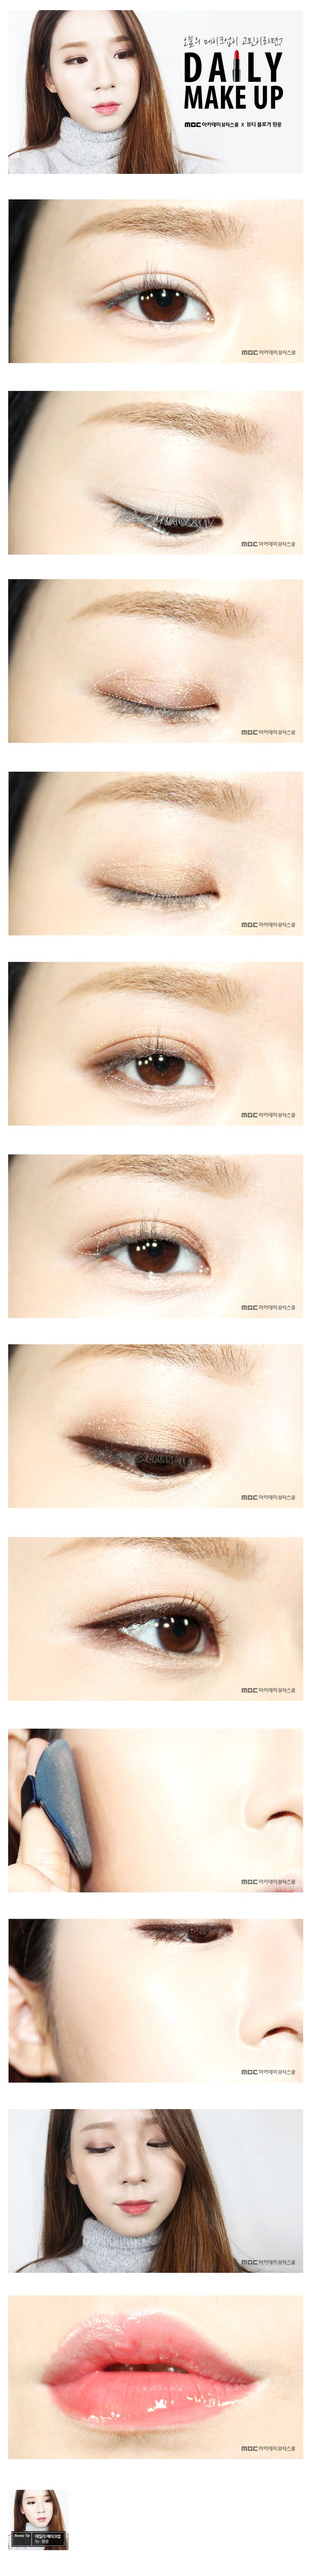 [SNS] Blog_ Daily make up; Beauty Contents Design